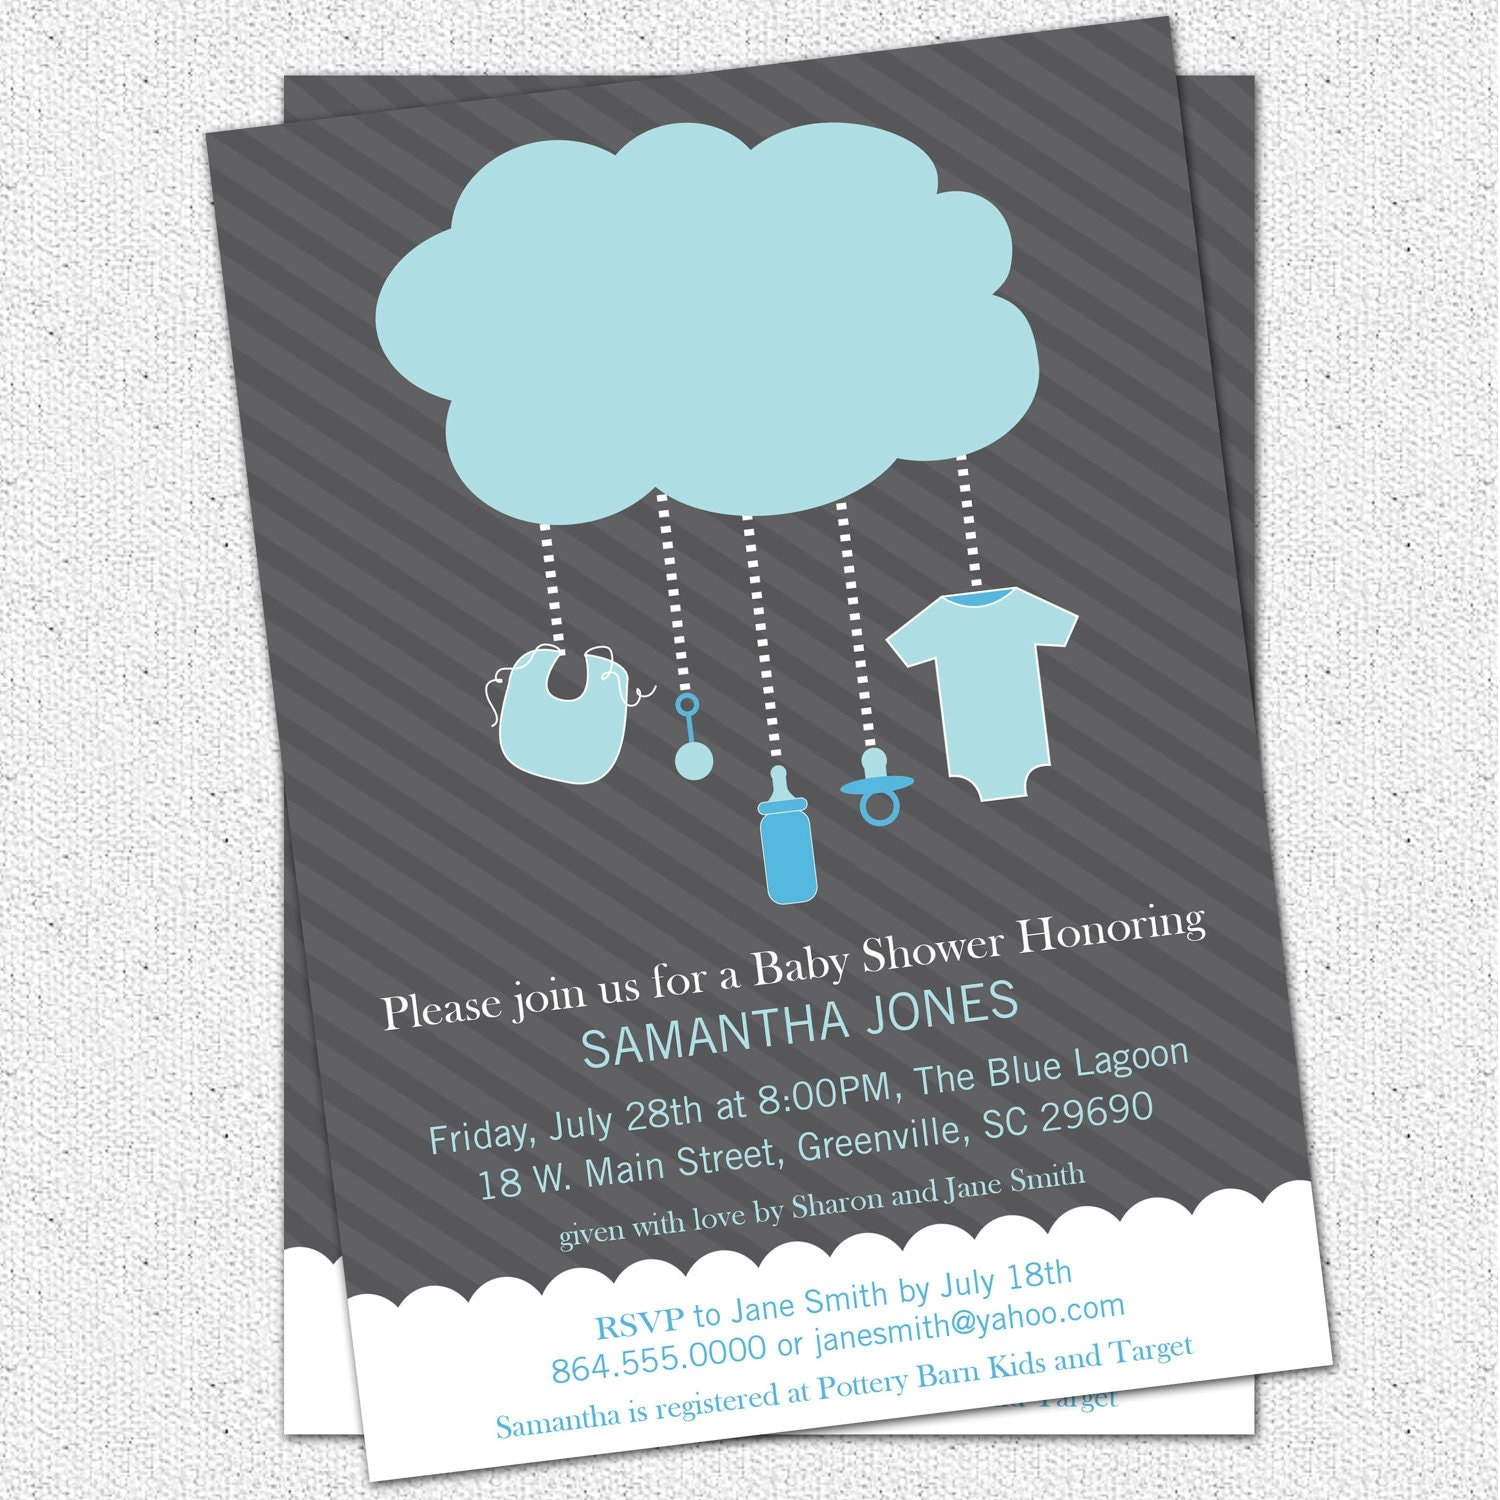 Custom Baby Shower Invitations For Boys is beautiful invitations template